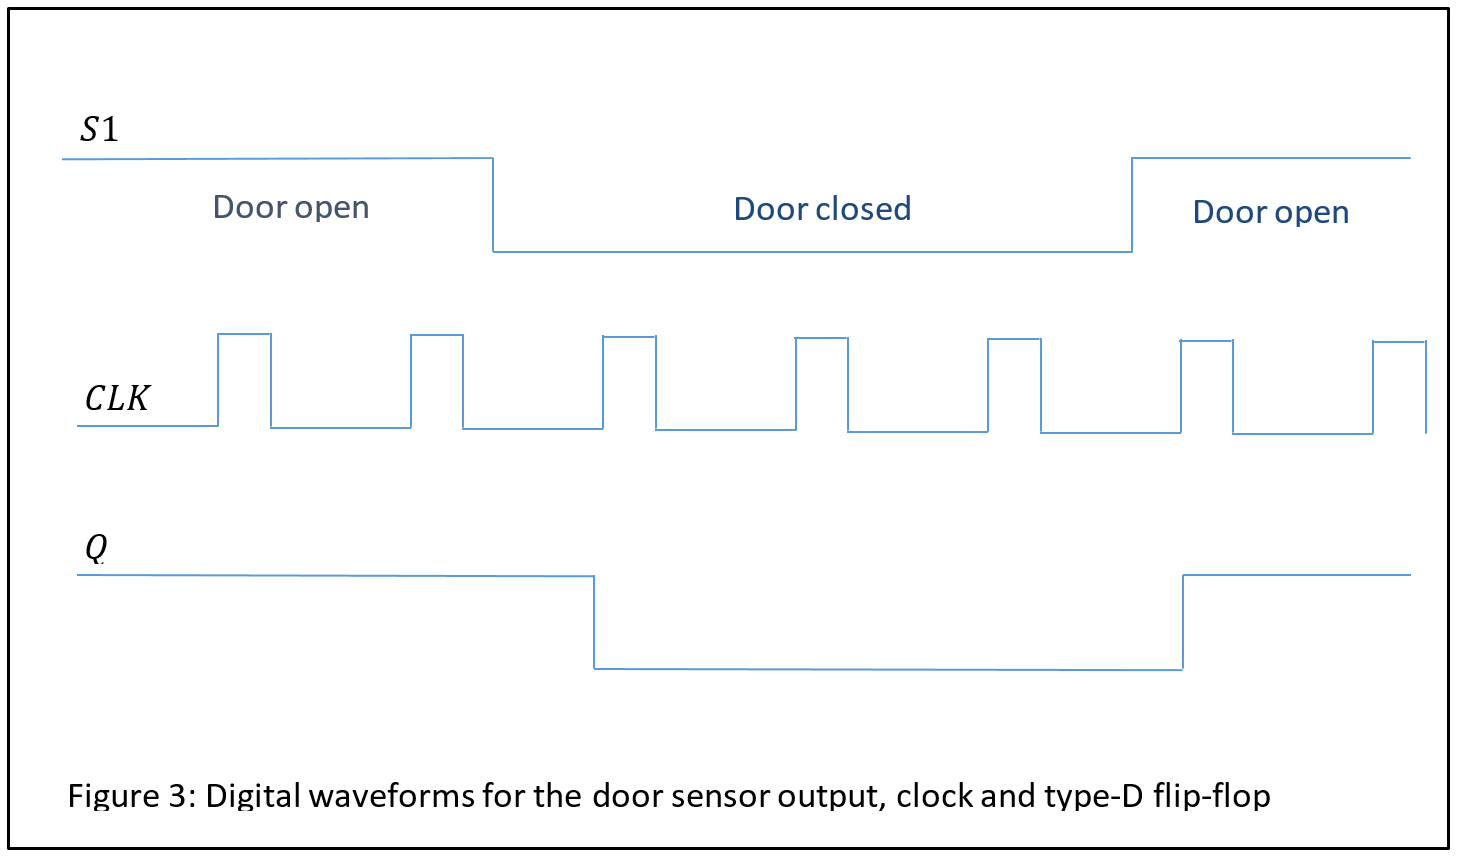 D Flip Flop Logic Diagram And Truth Table Digital Examples Electrical Engineering Figure 3 Waveforms For The Door Sensor Output Clock Type